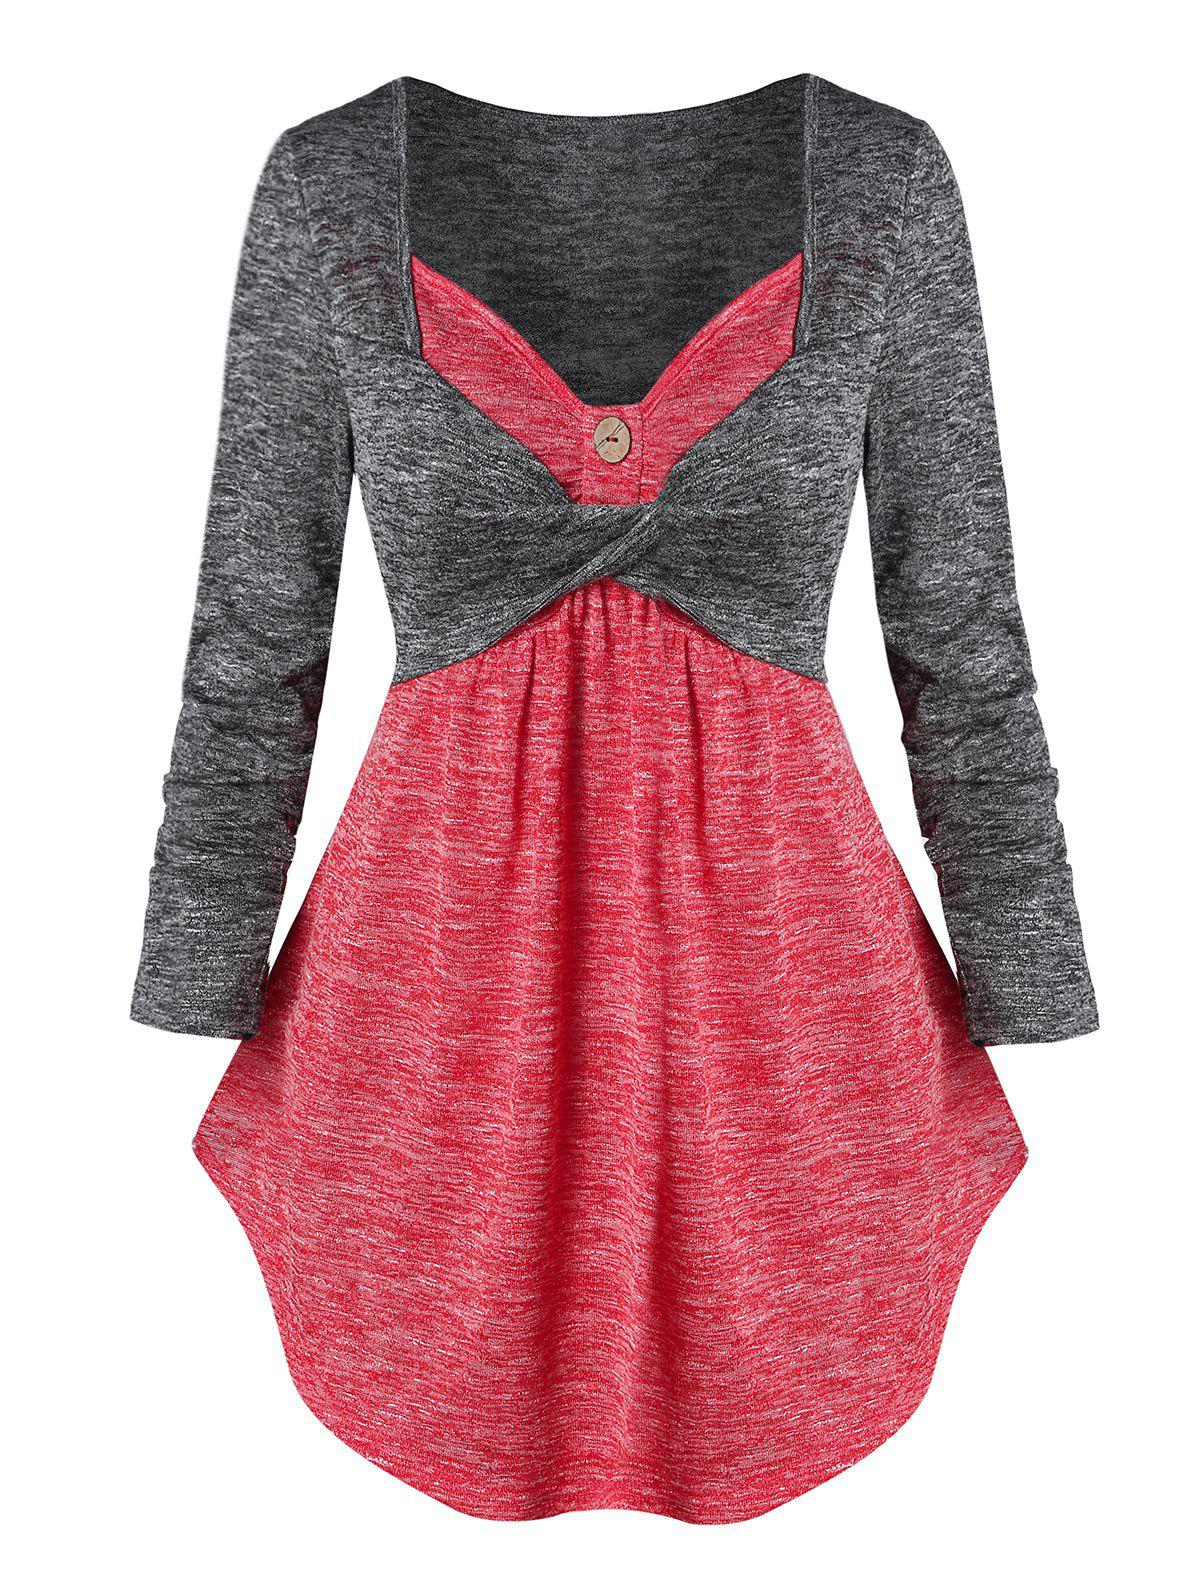 Twist Front Contrast Heathered 2 in 1 Knitwear - RED XL